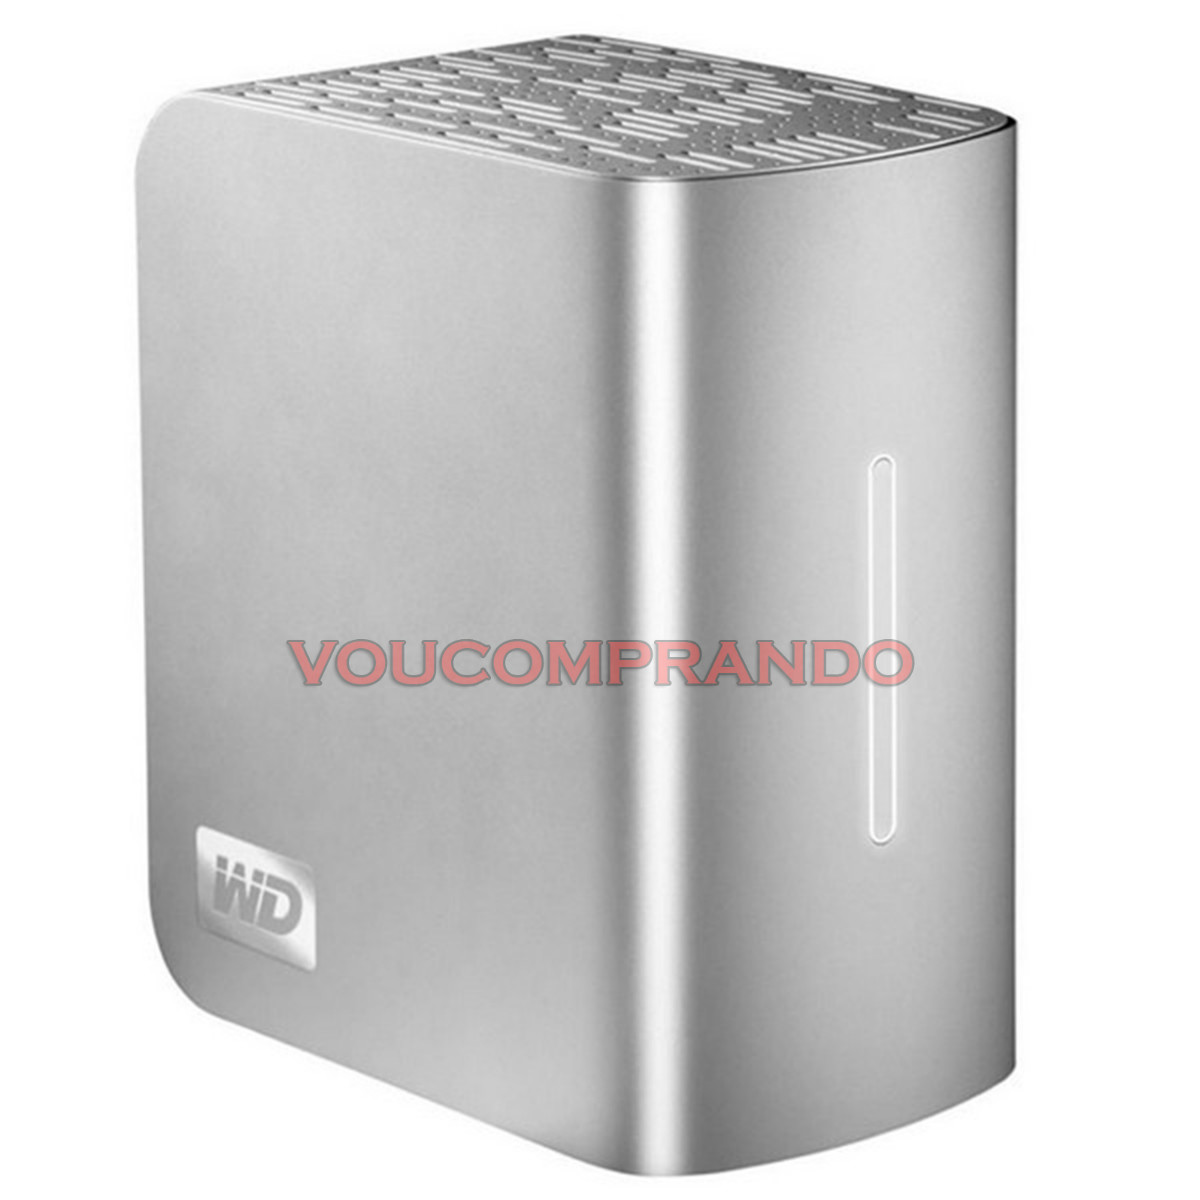 https://img.comunidades.net/vou/voucomprando/VOUCOMPRANDO_Western_Digital_My_Book_Studio_Edition_II_4TB_USB_2.jpg